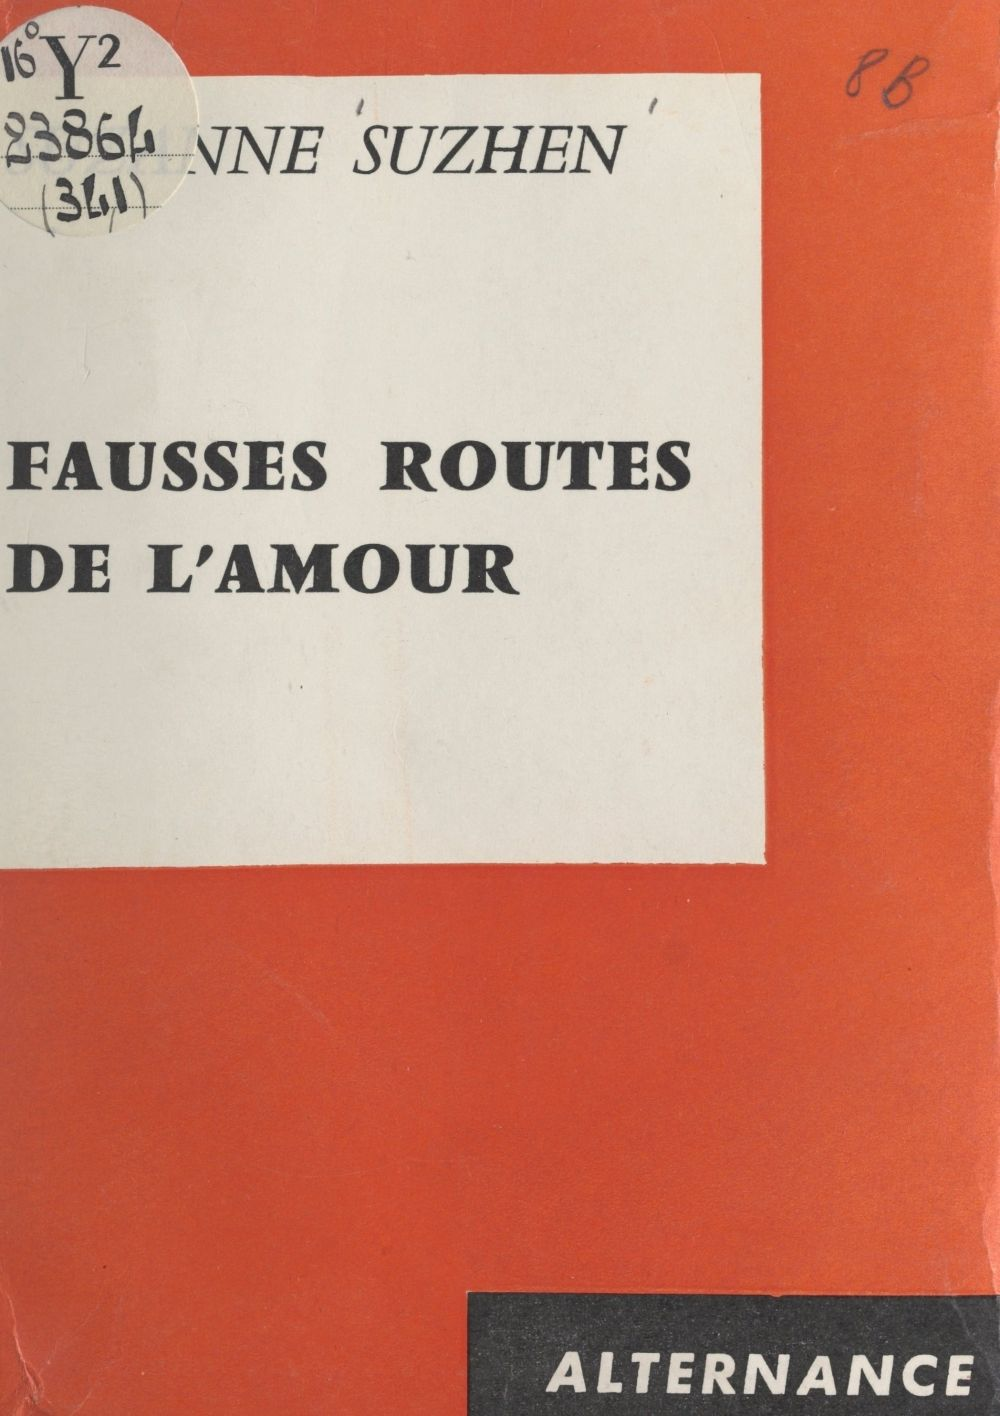 Fausses routes de l'amour